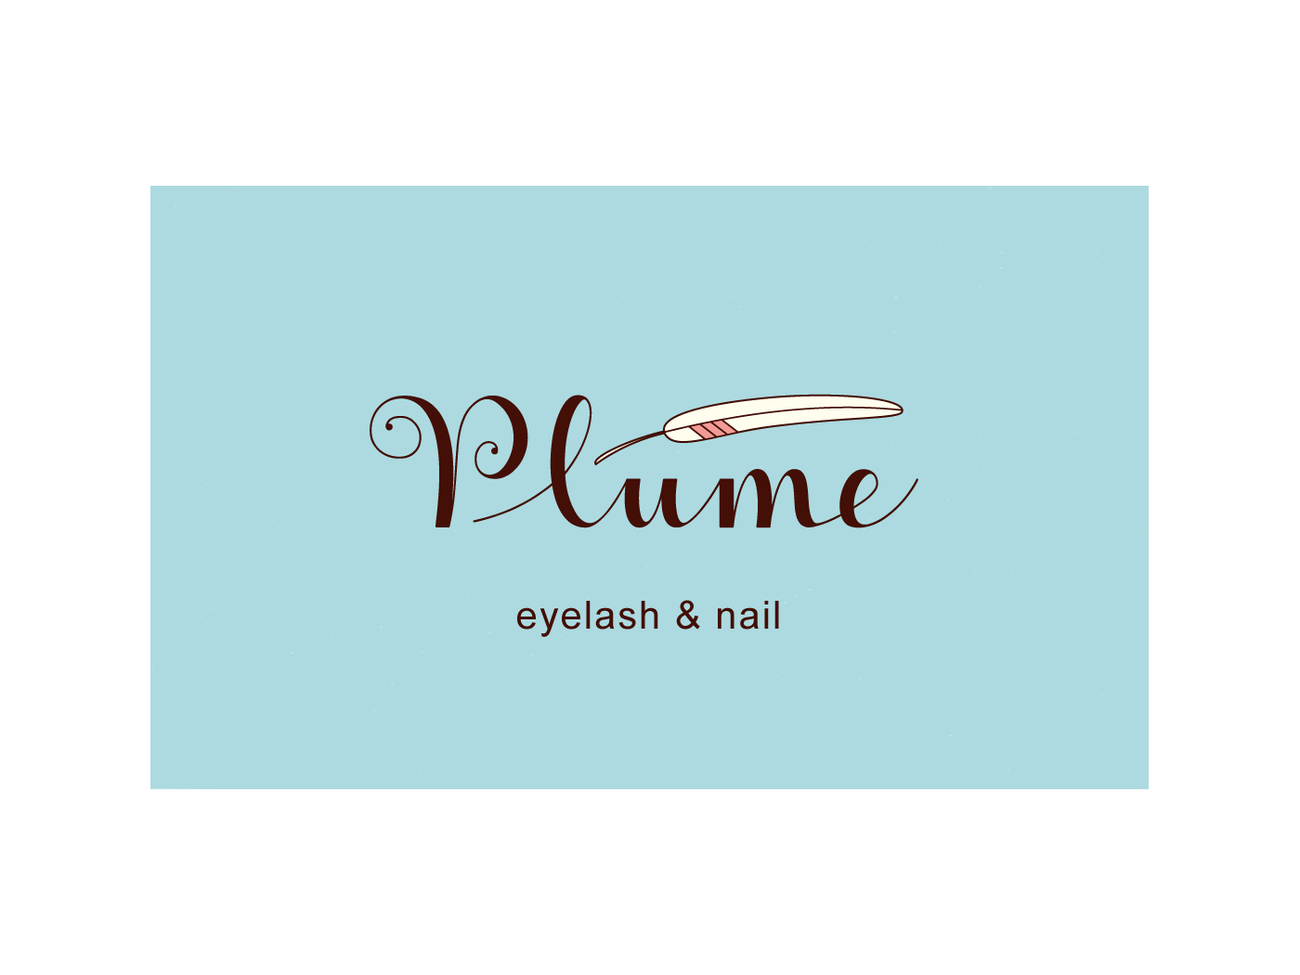 161204 Plume-19+.png